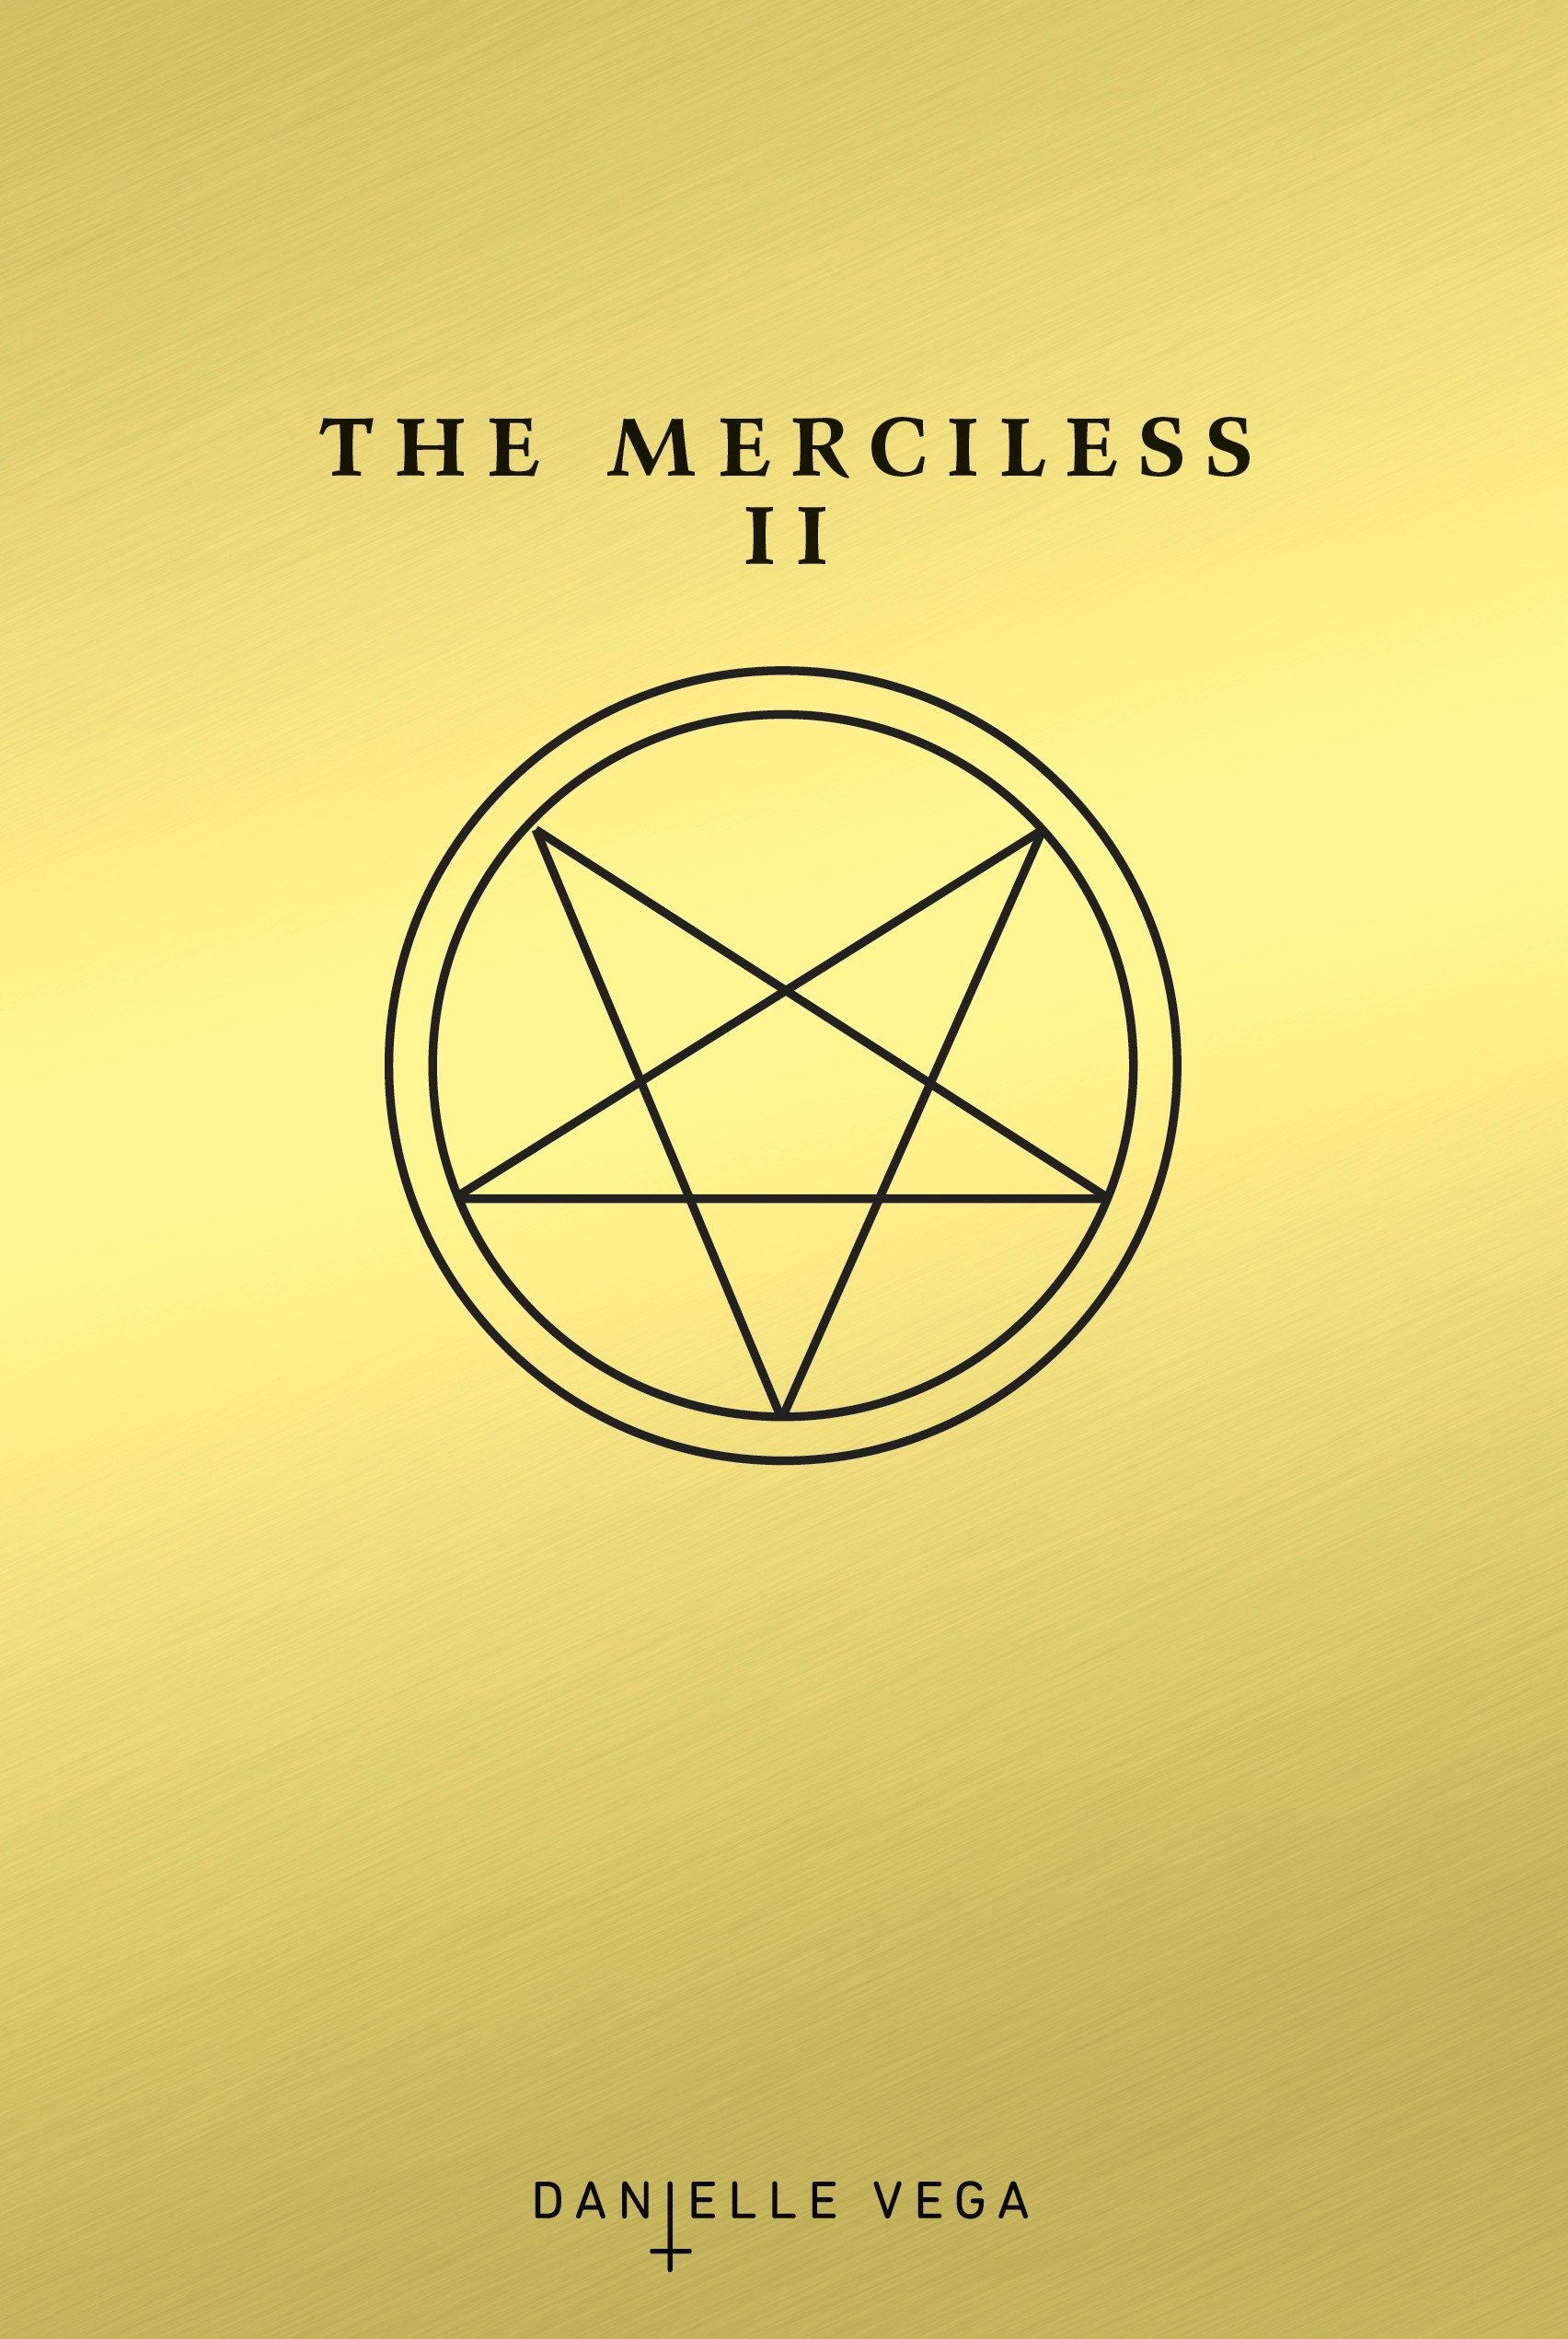 Image result for The Merciless II: The Exorcism of Sofia Flores by Danielle Vega